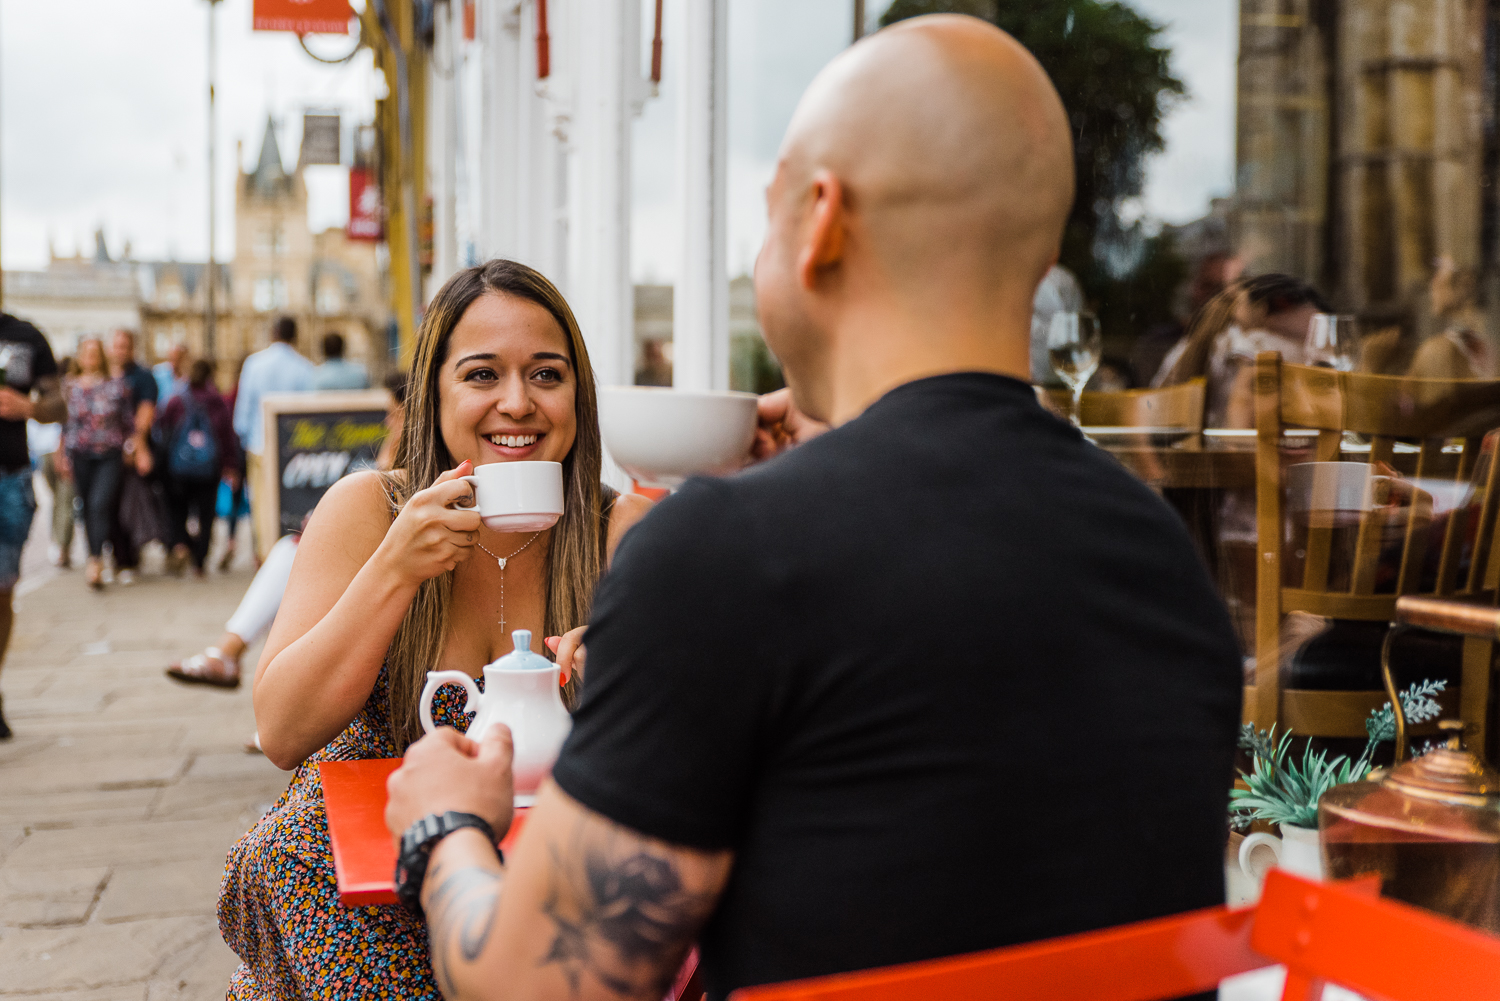 A woman drinks tea while smiling at her boyfriend during a couple photo session in Cambridge